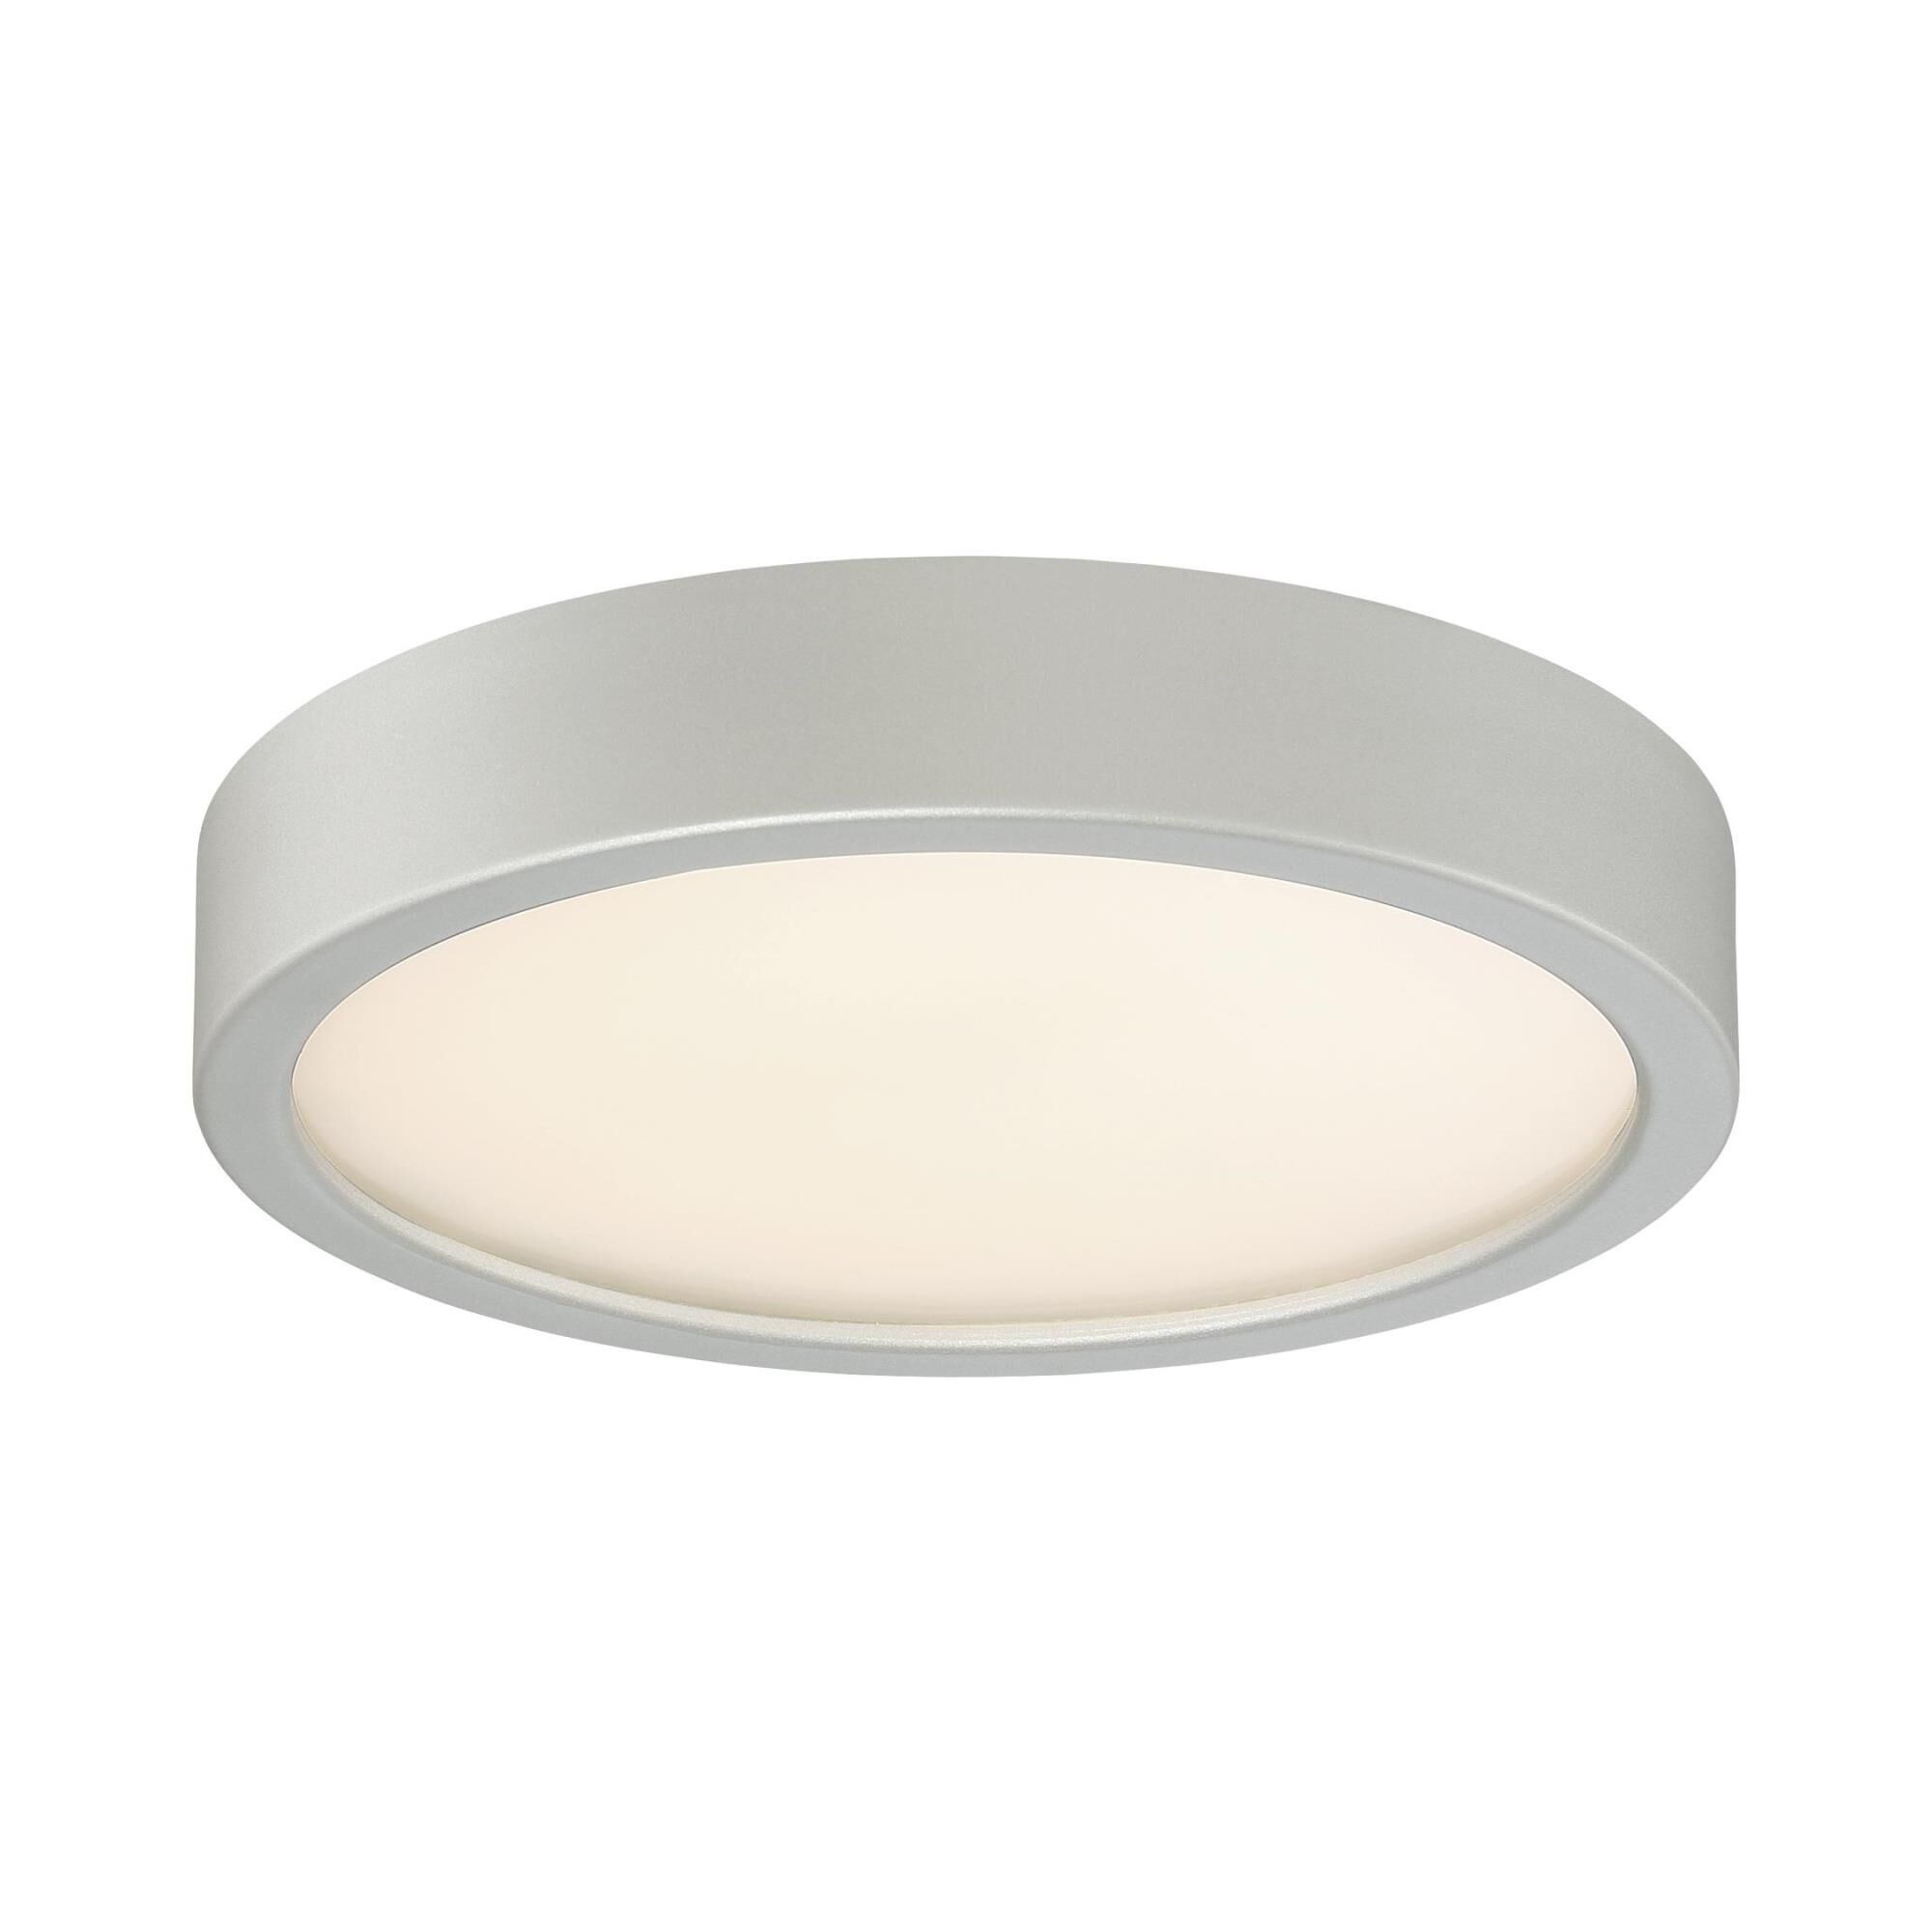 Kovacs 8 Inch 1 Light Led Flush Mount - P841-609-l - Transitional